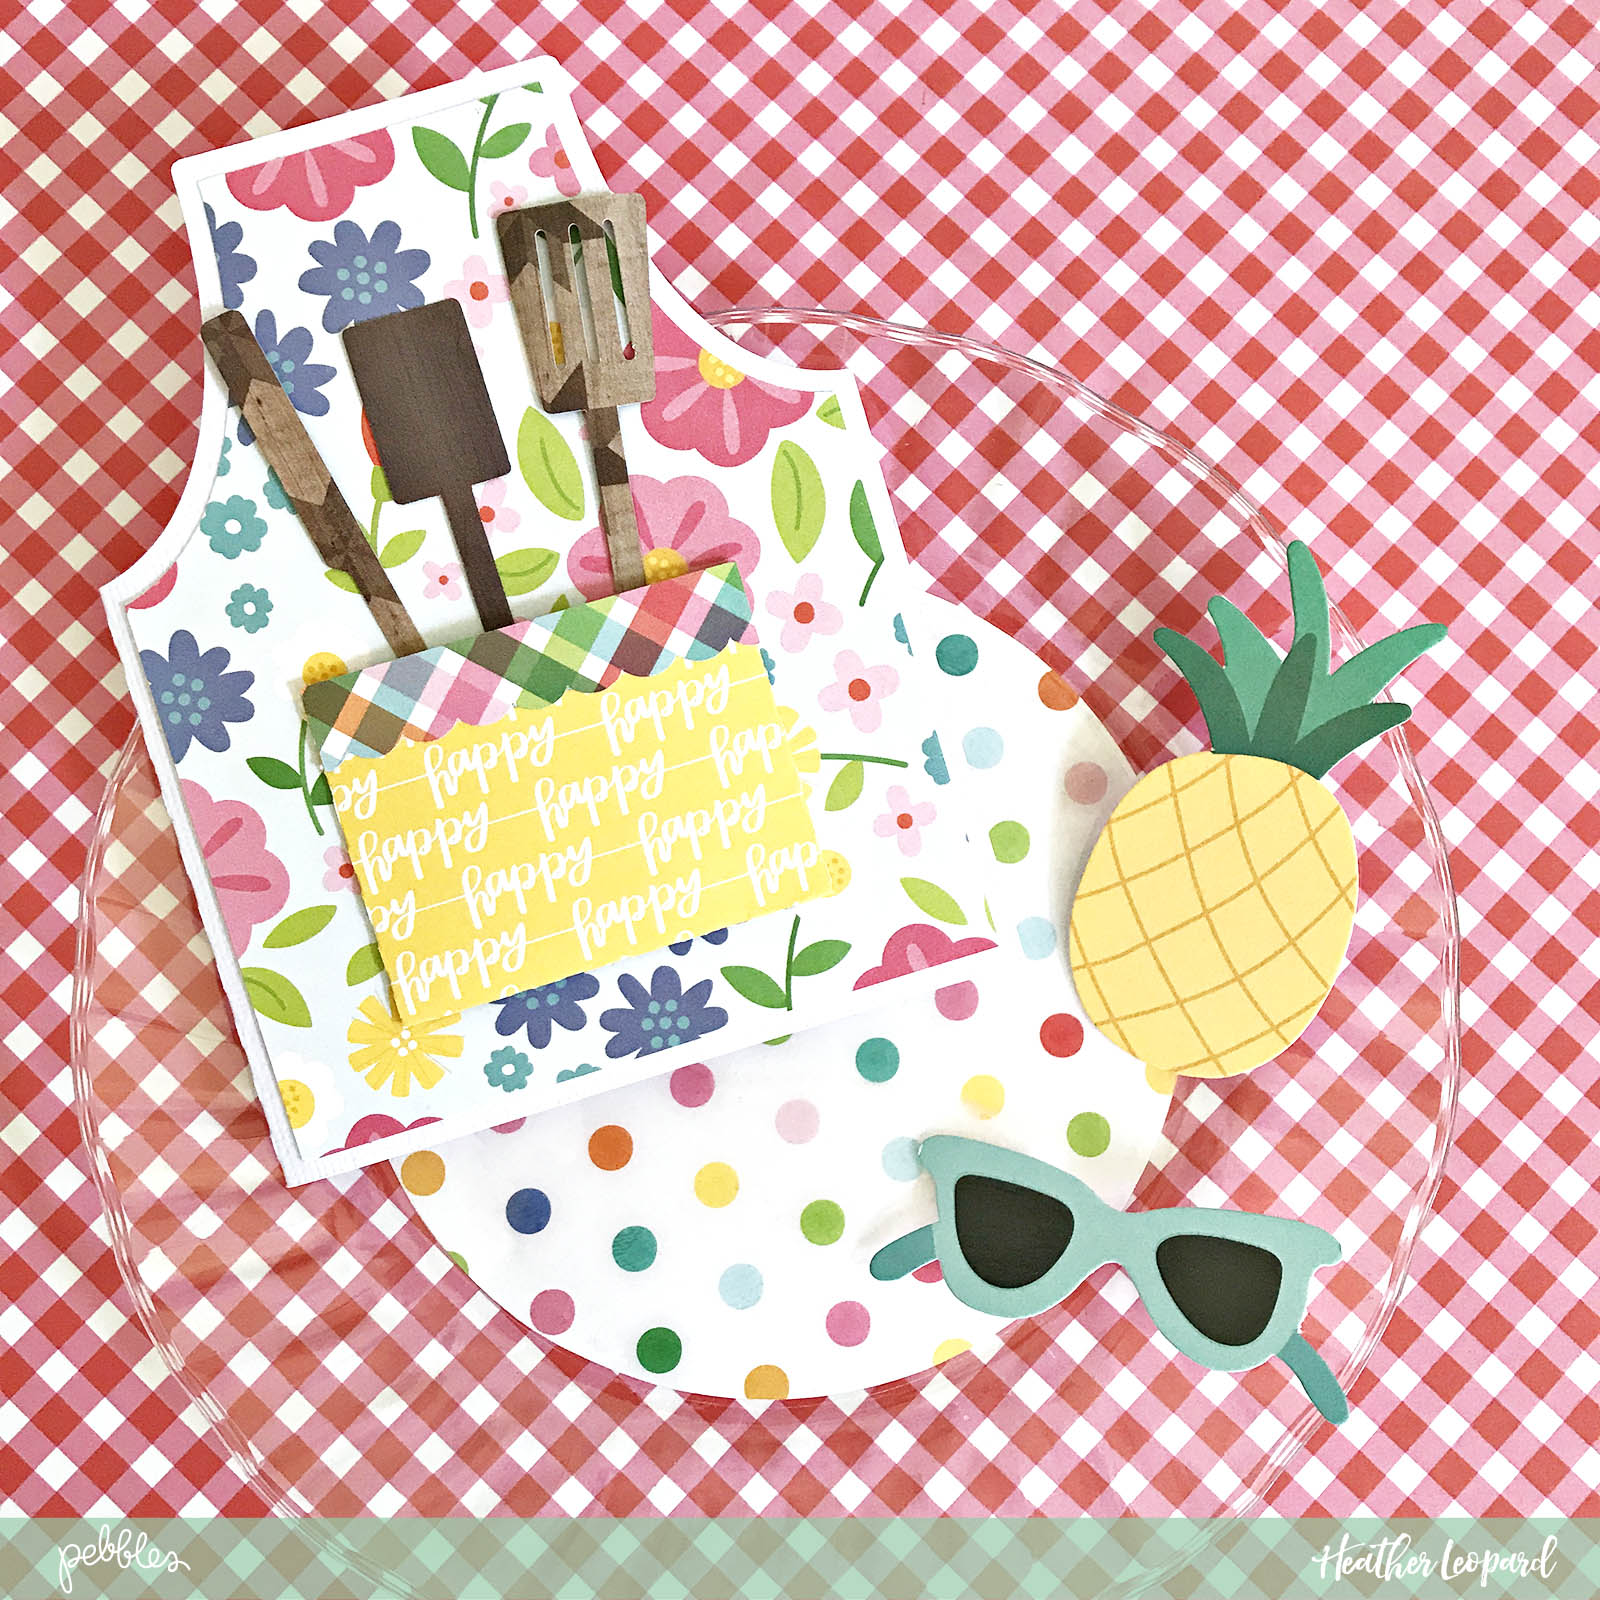 DIY BBQ Picnic by @heatherleopard using the #SunshinyDays collection by @pebblesinc